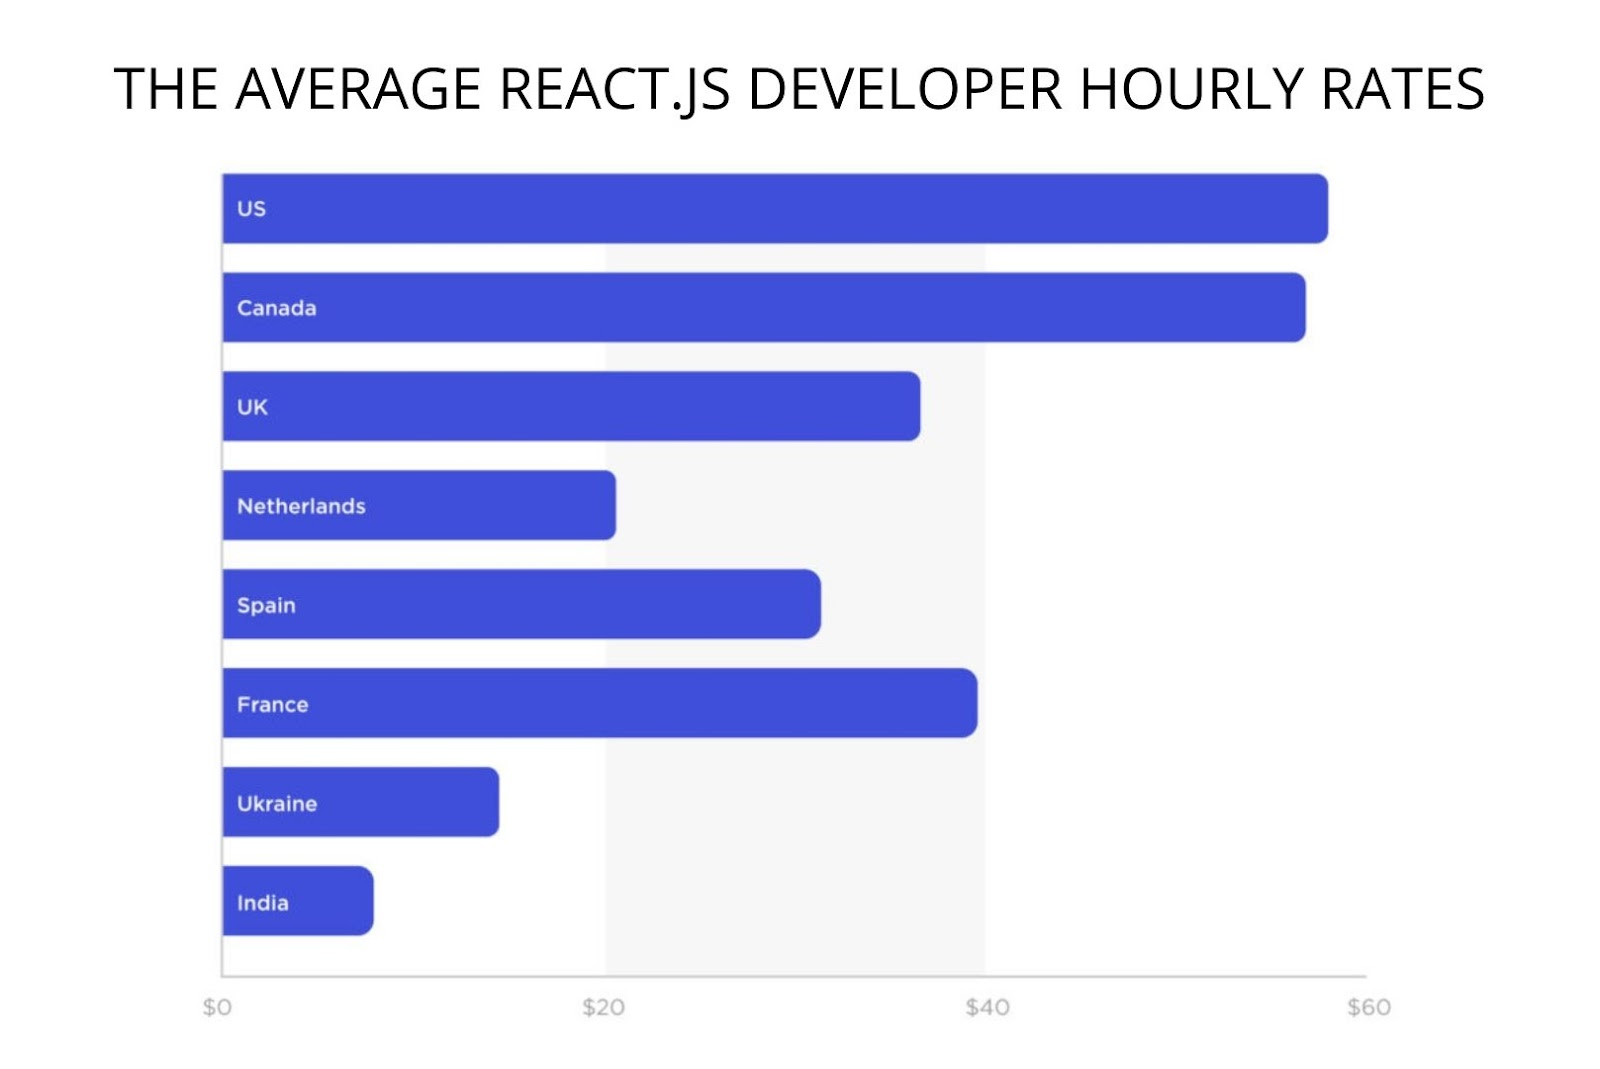 Reactjs developer hourly rates